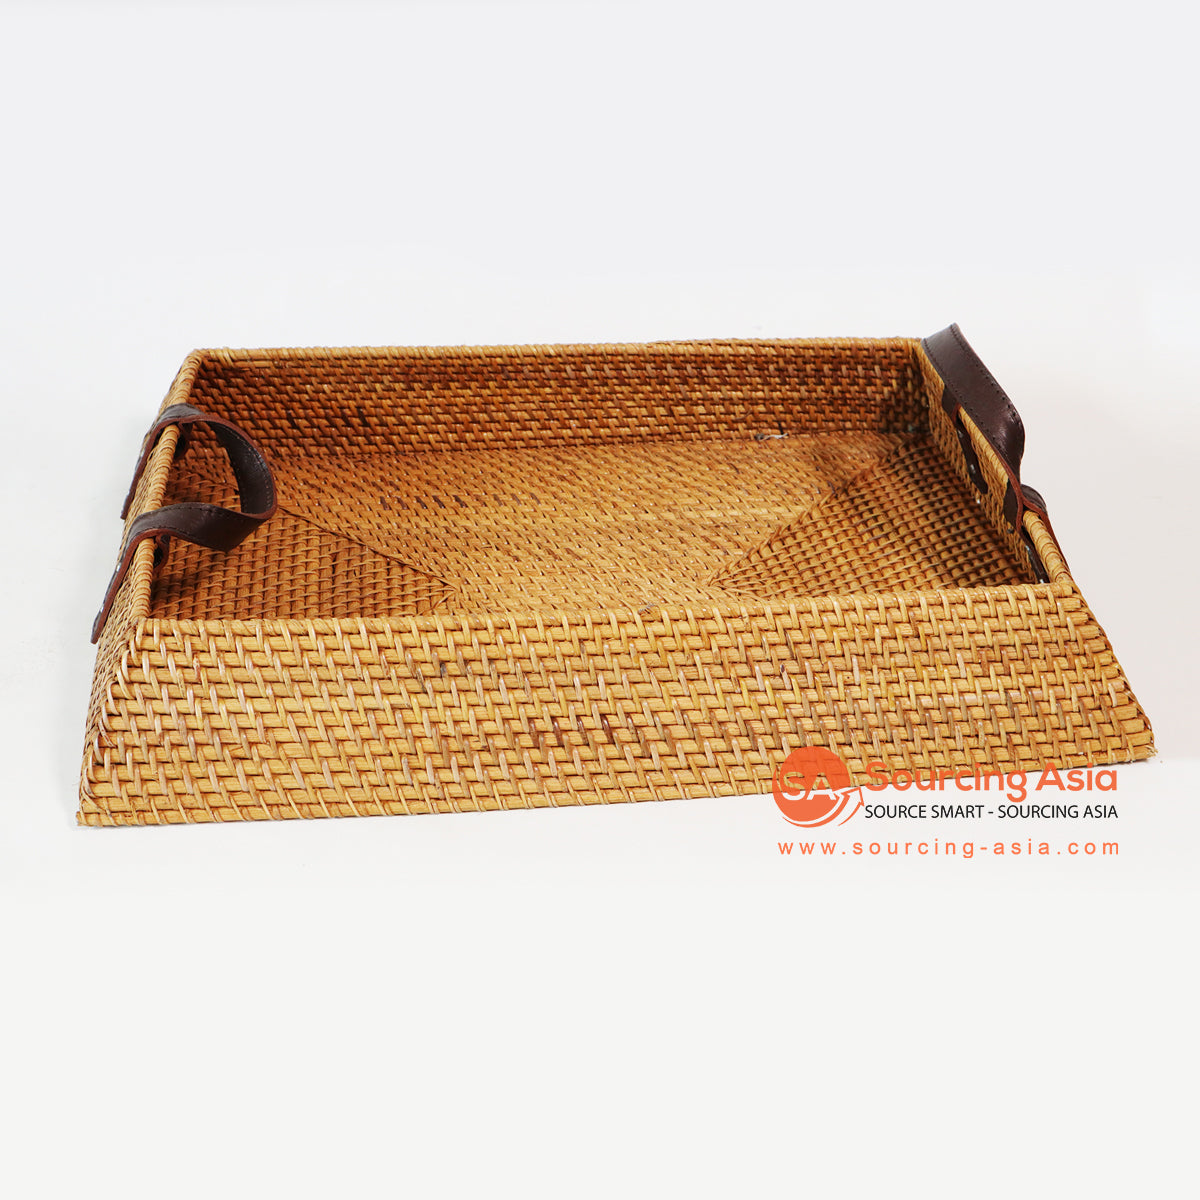 MTIC028-1 RATTAN TRAY WITH LEATHER HANDLE